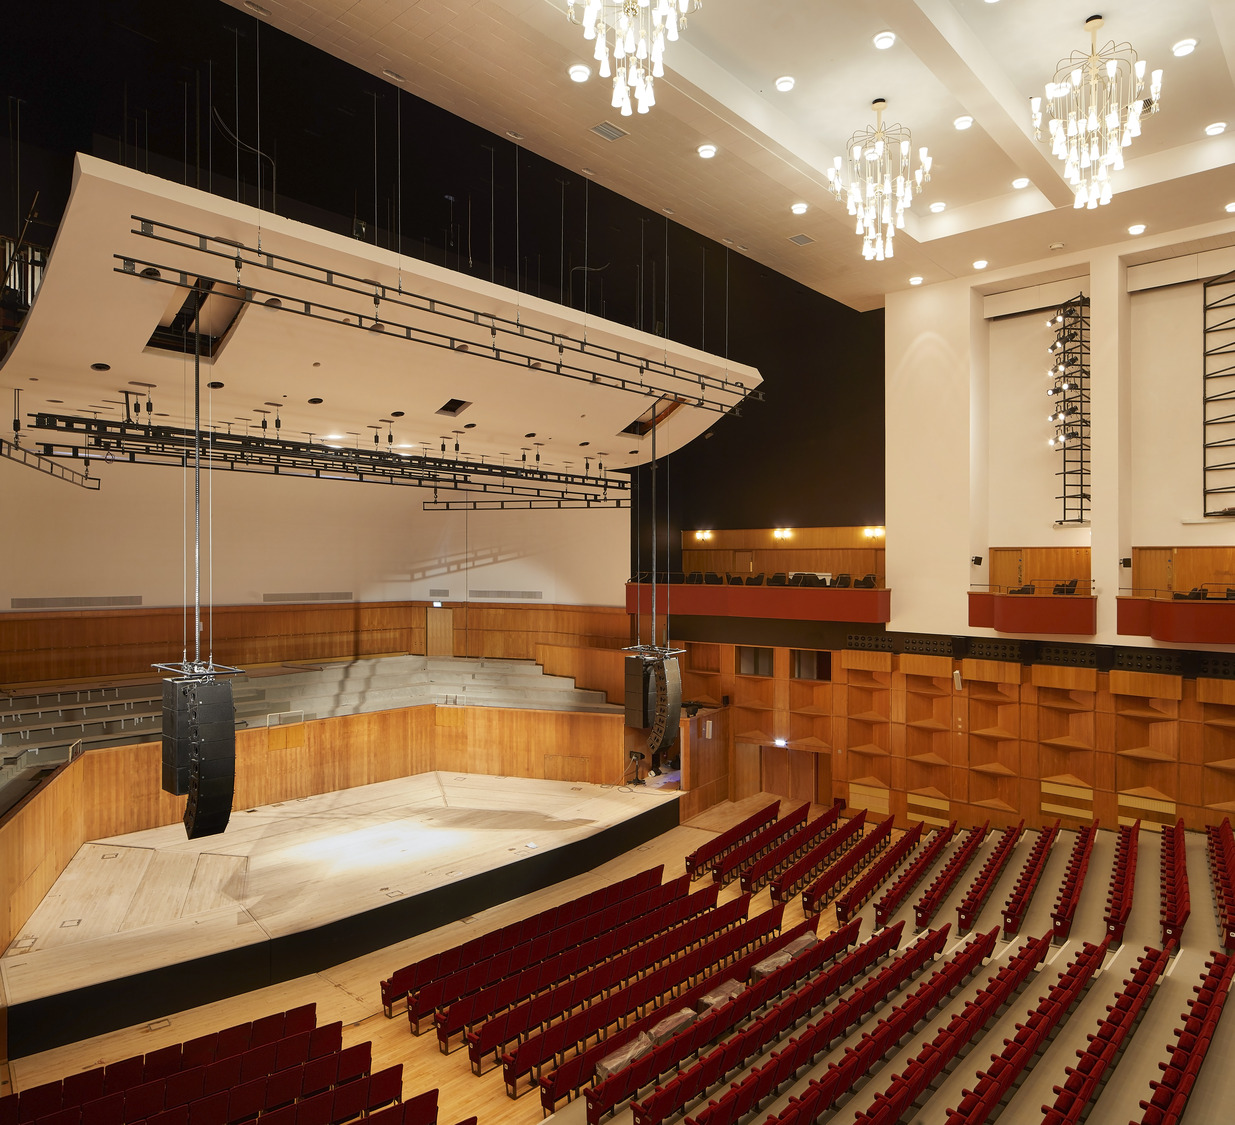 Fairfield Halls - Winner of Refurbishment Project of the Year 2020